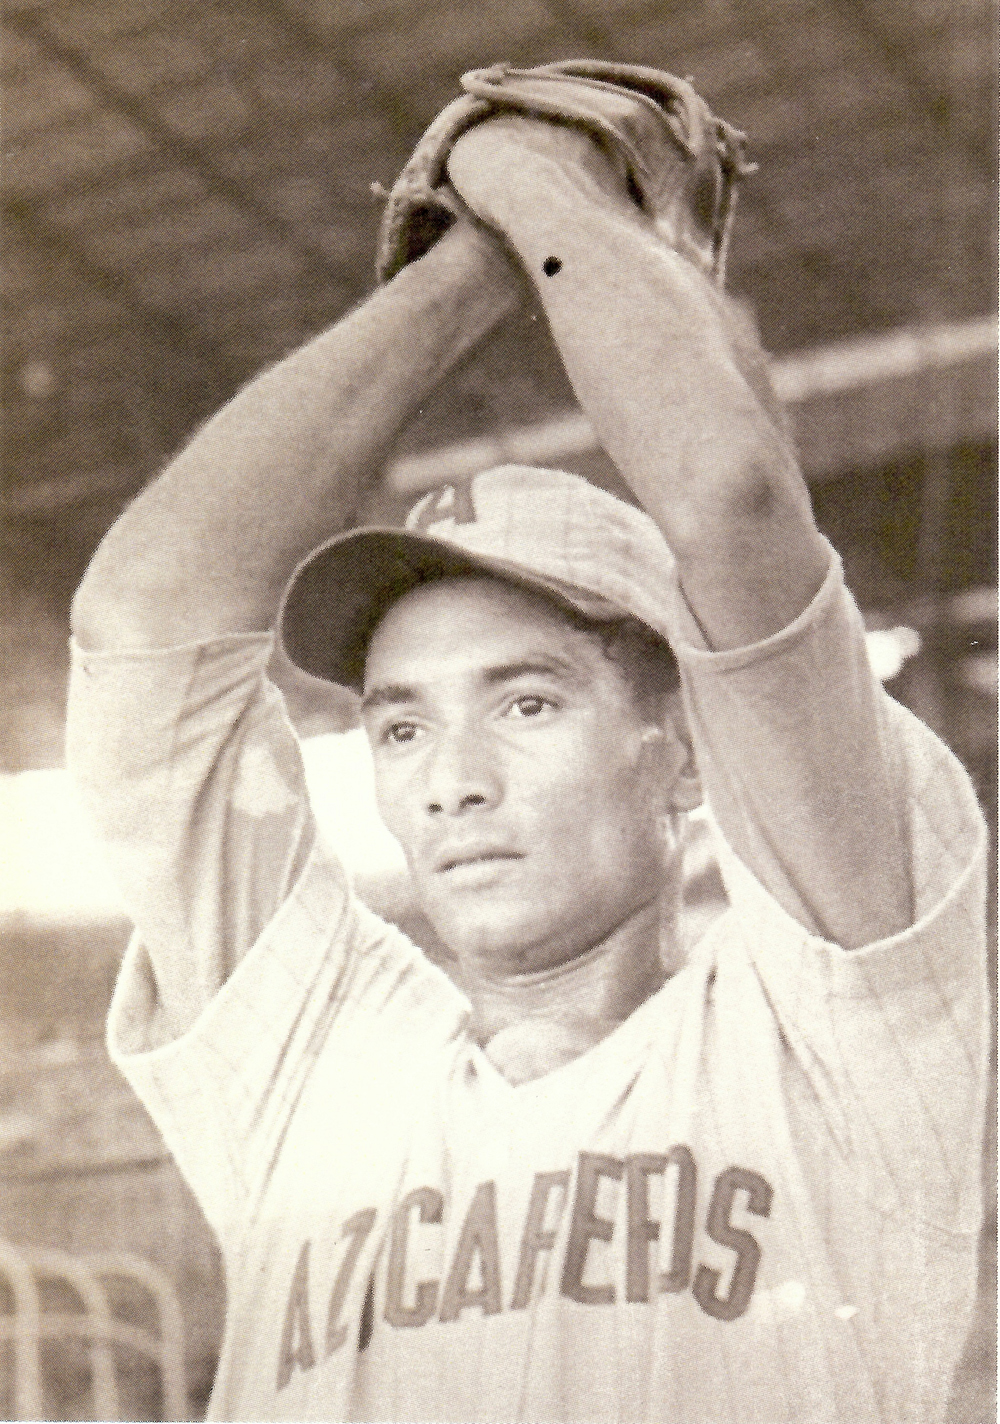 in the uniform of the 1968–69 National Series champion Azucareros ball club, three seasons after his miraculous three-game pitching string.